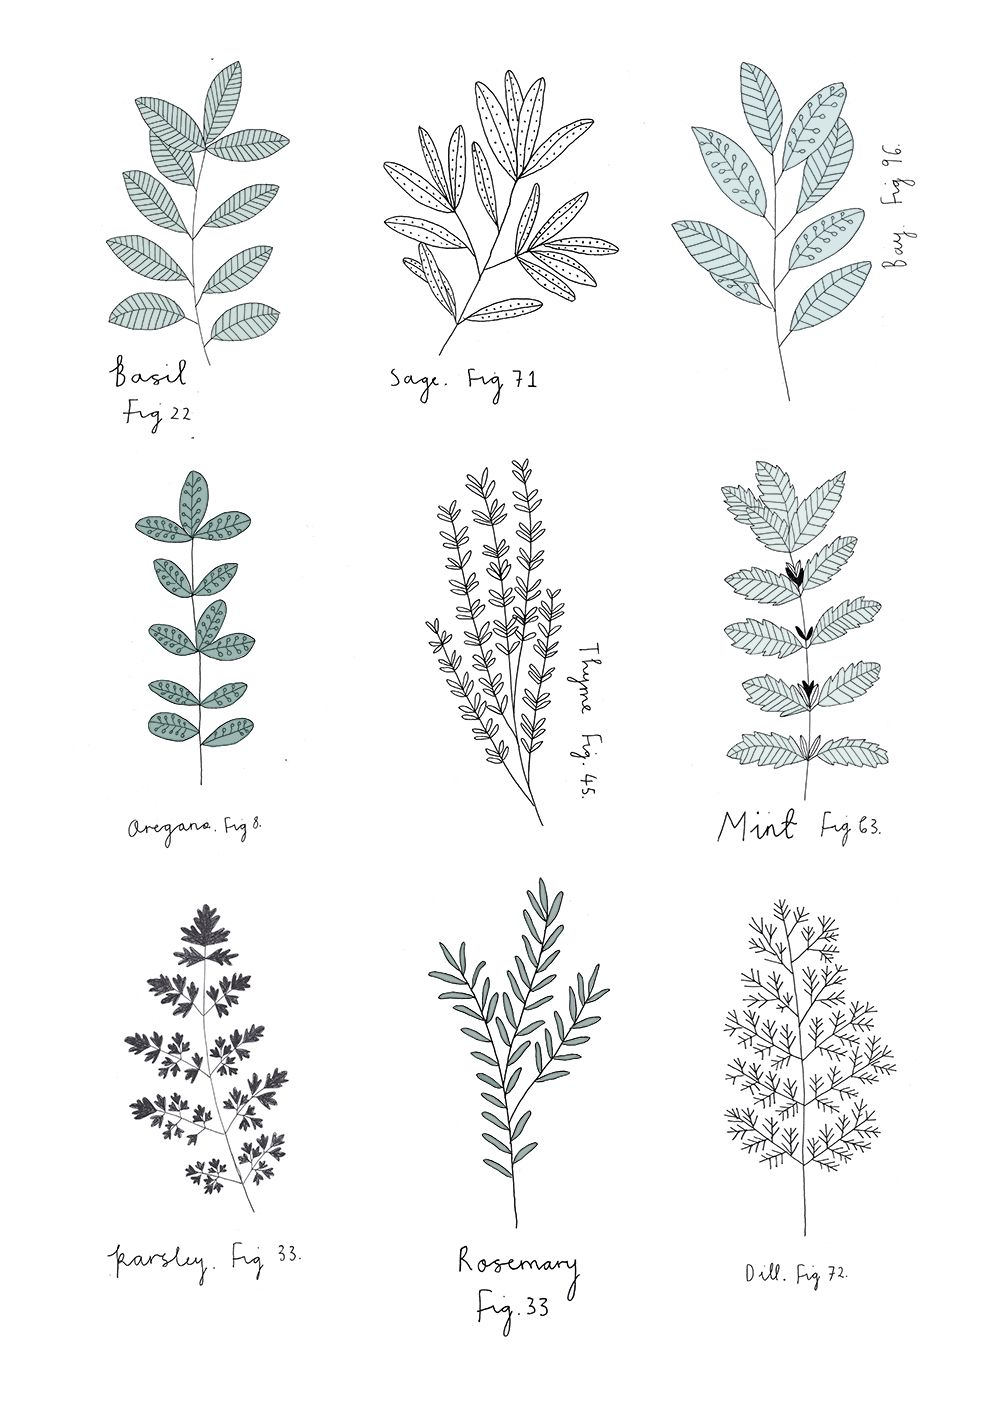 Herb Print By Ryn Frank Www Rynfrank Co Uk Botanical Drawings Plant Drawing Flower Drawing